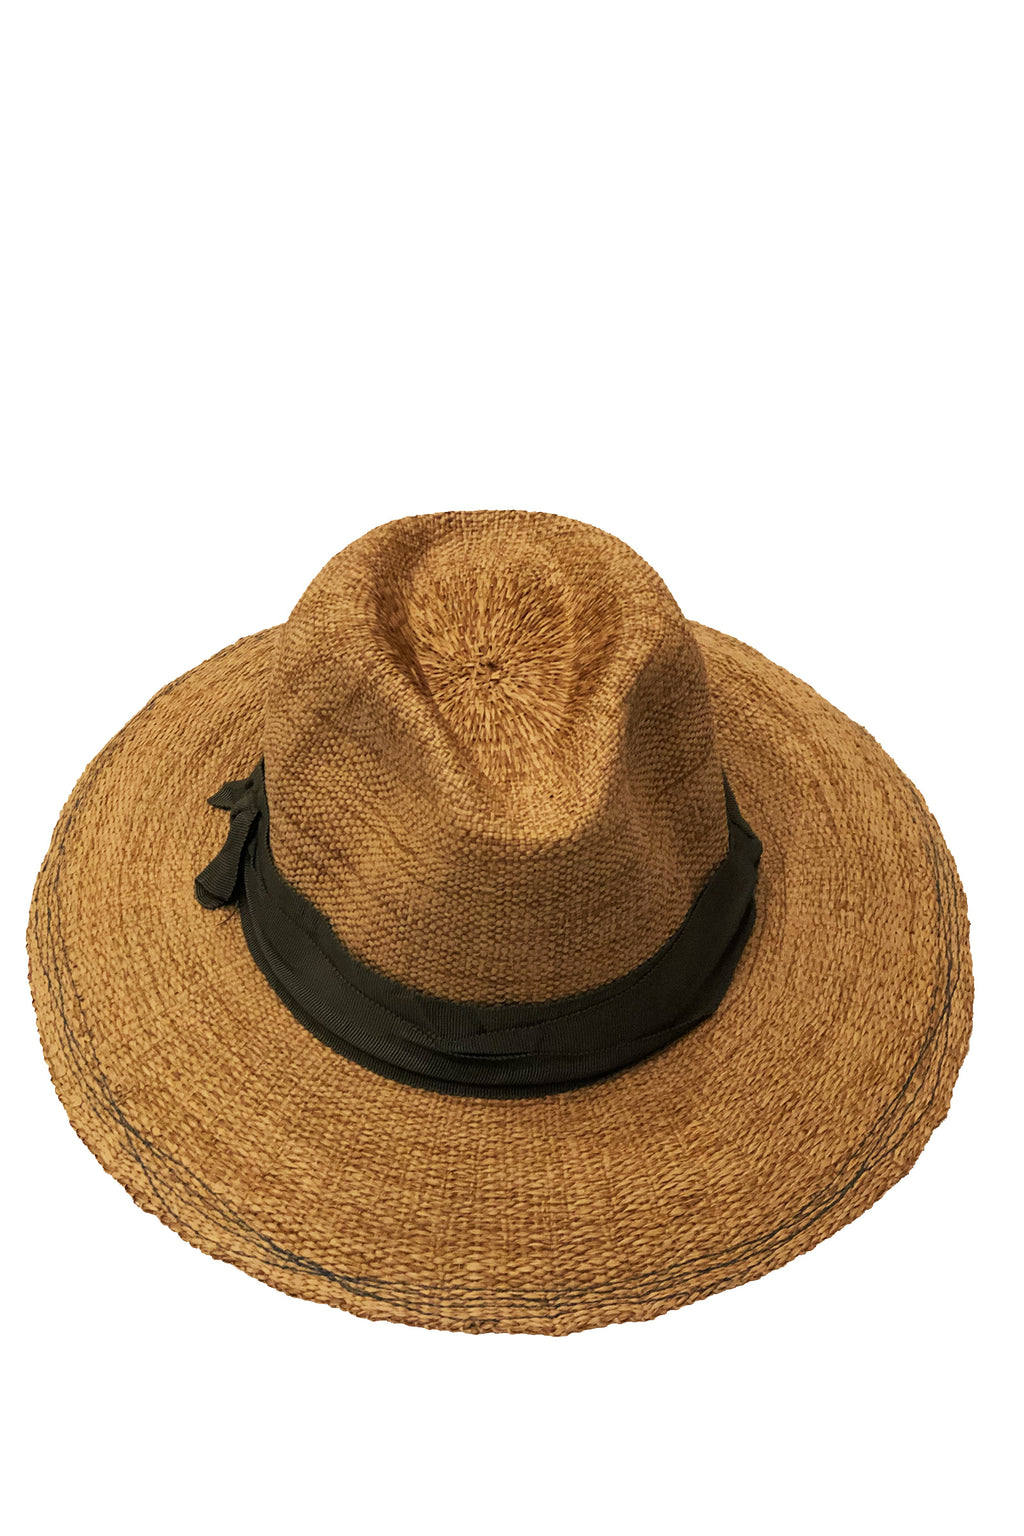 Lola Ehrlich Risa and Shine Straw Hat in Tabacco with Seaweed Ribbon